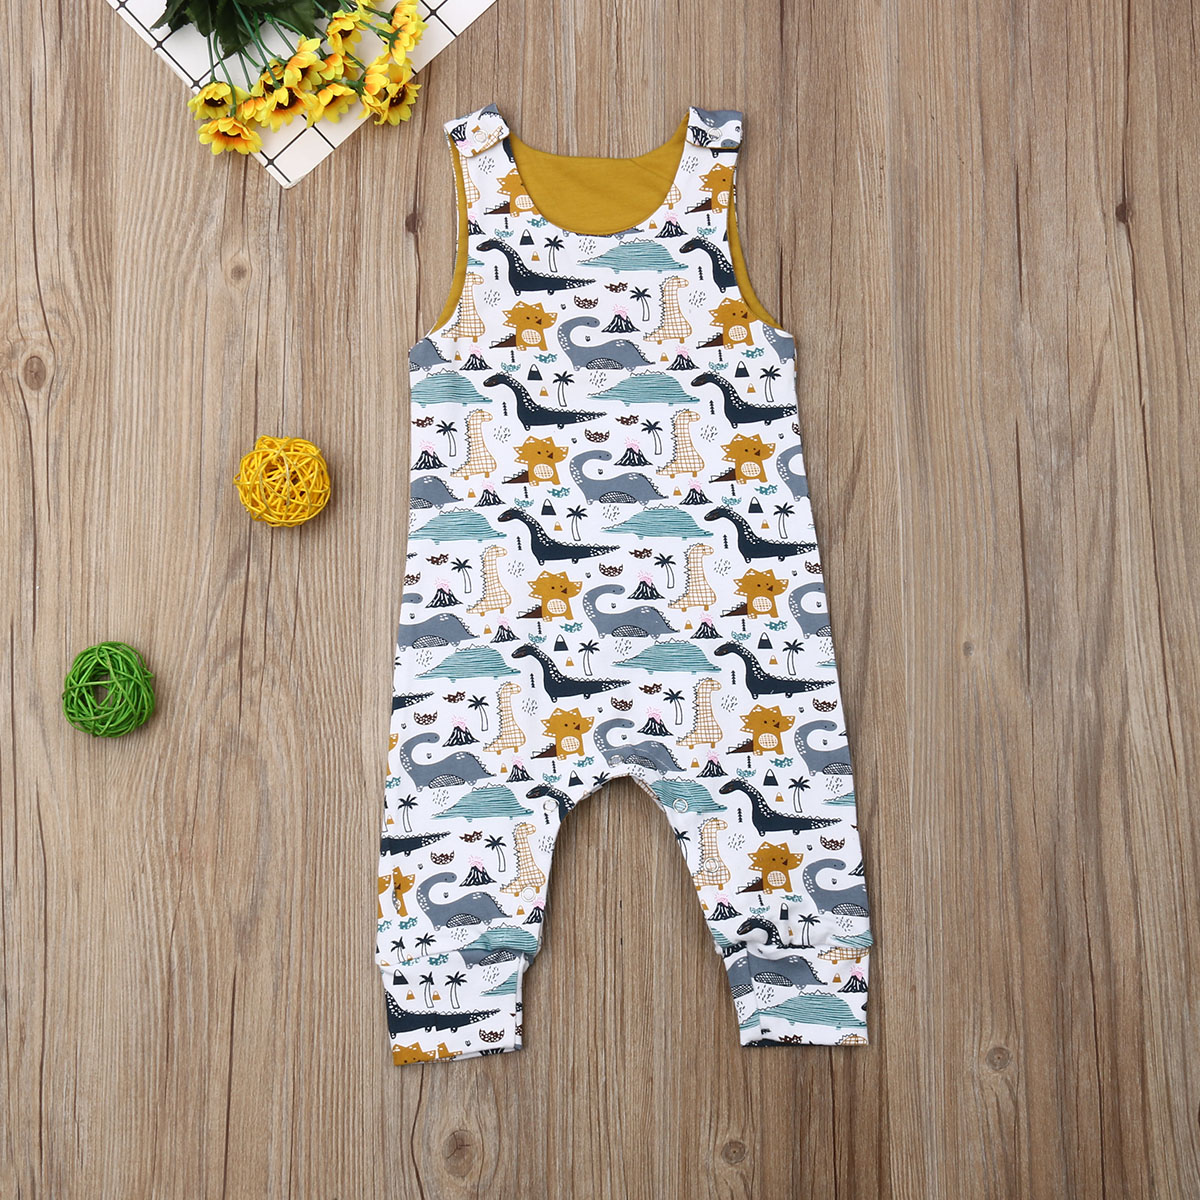 Pudcoco Summer Newborn Baby Boy Girl Clothes Sleeveless Cotton Cute Dinosaur Print Romper Jumpsuit One-Piece Outfit Playsuit